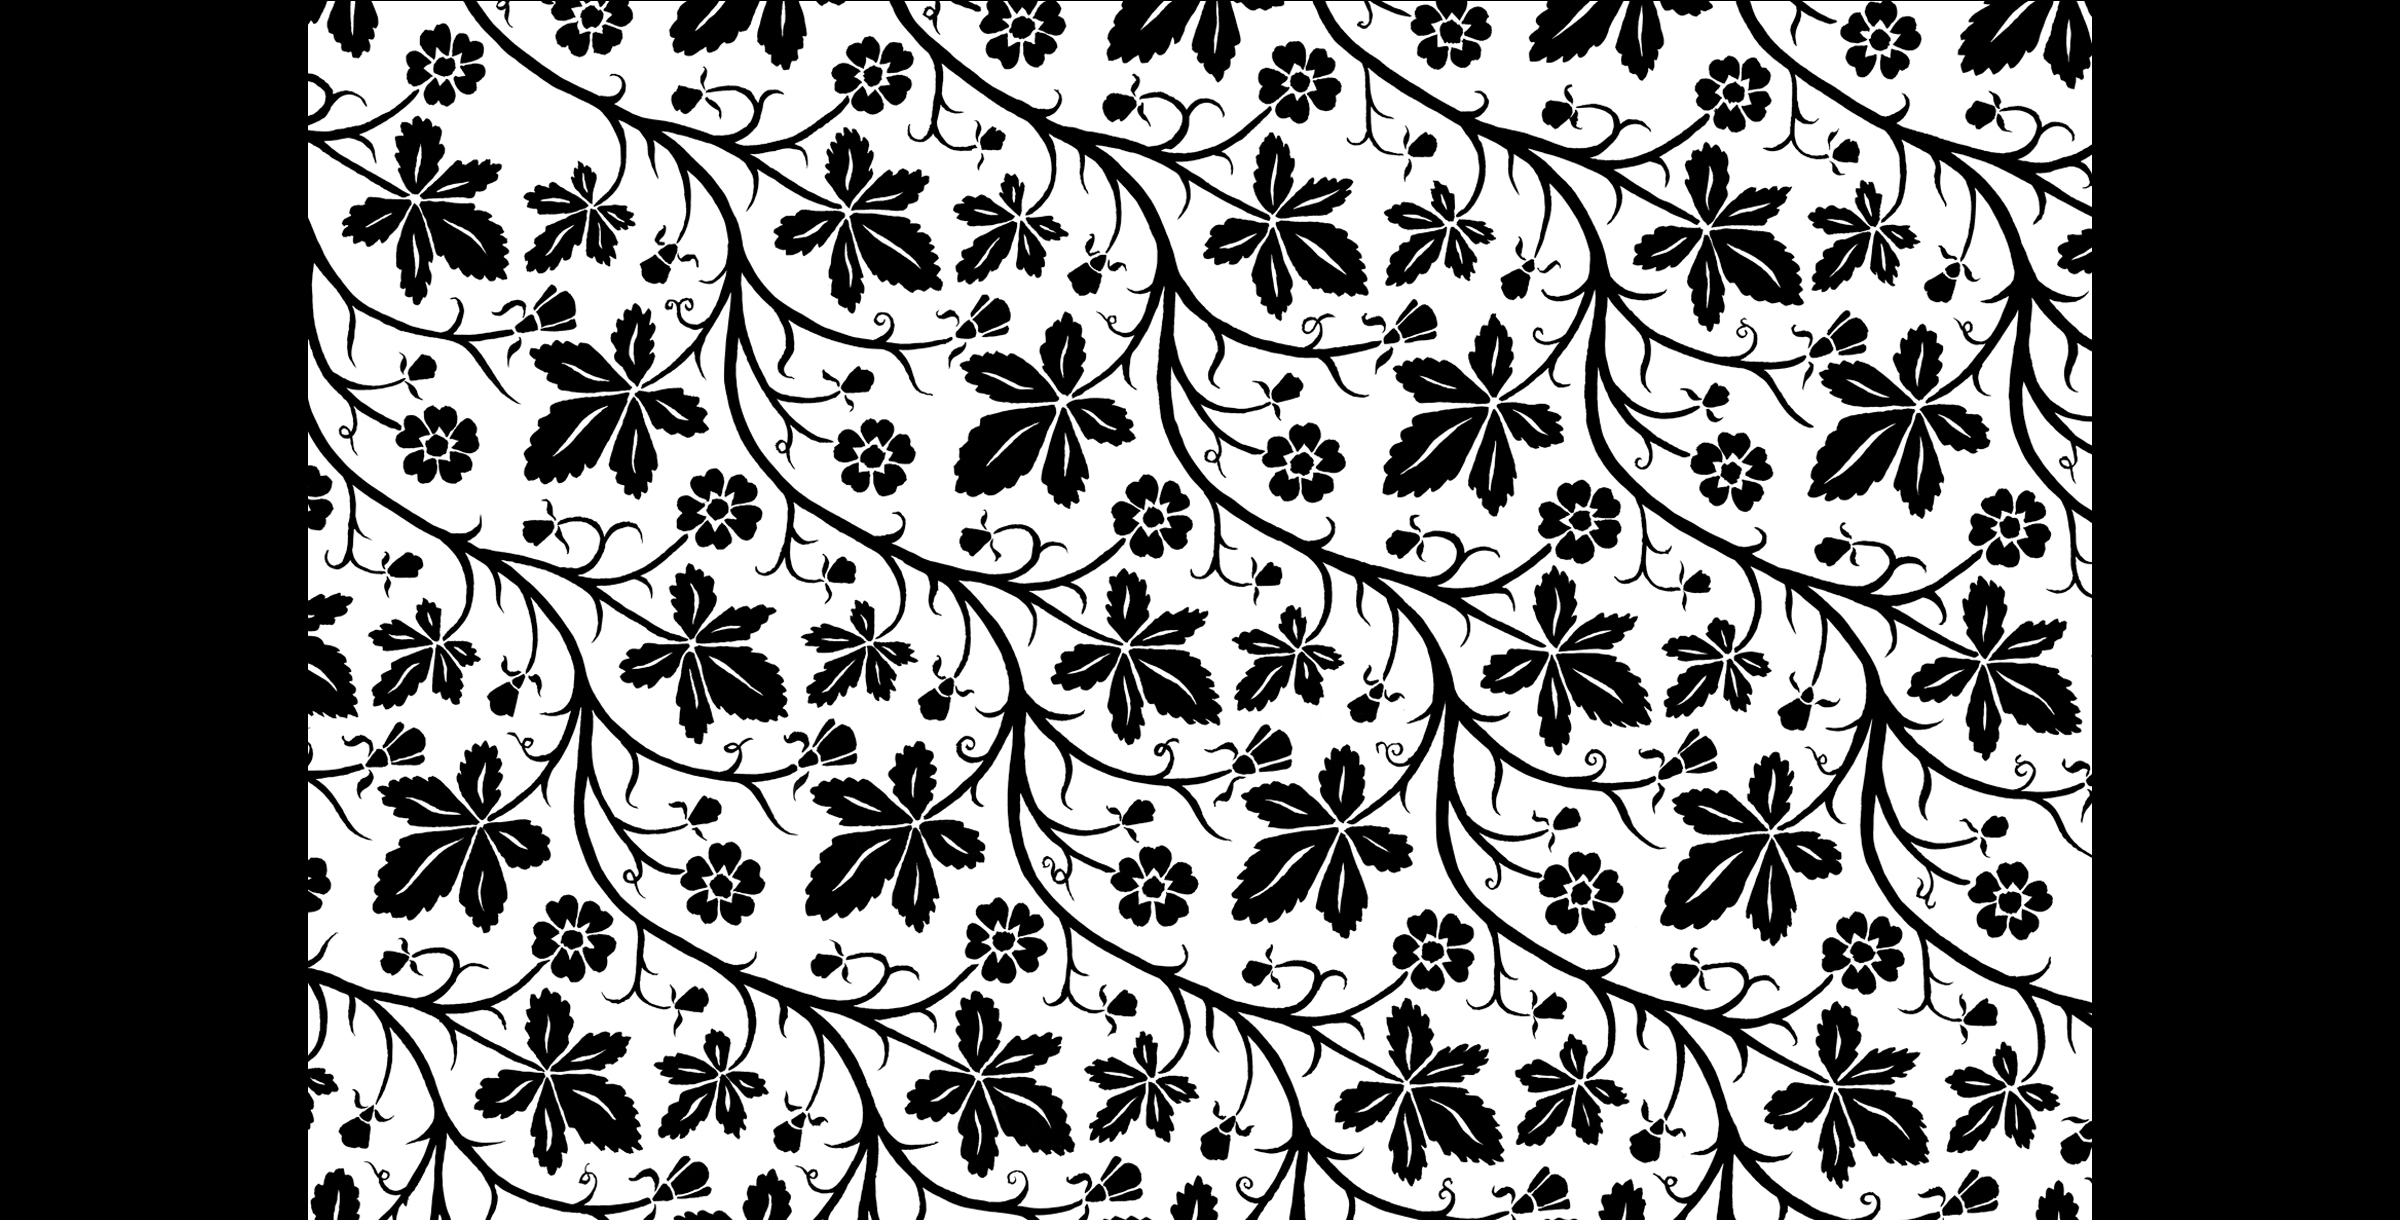 Leaf and Flower Pattern. Original pattern before distressing.  1994. Pen and ink. Produced for Mudlark Papers, Chicago, IL.